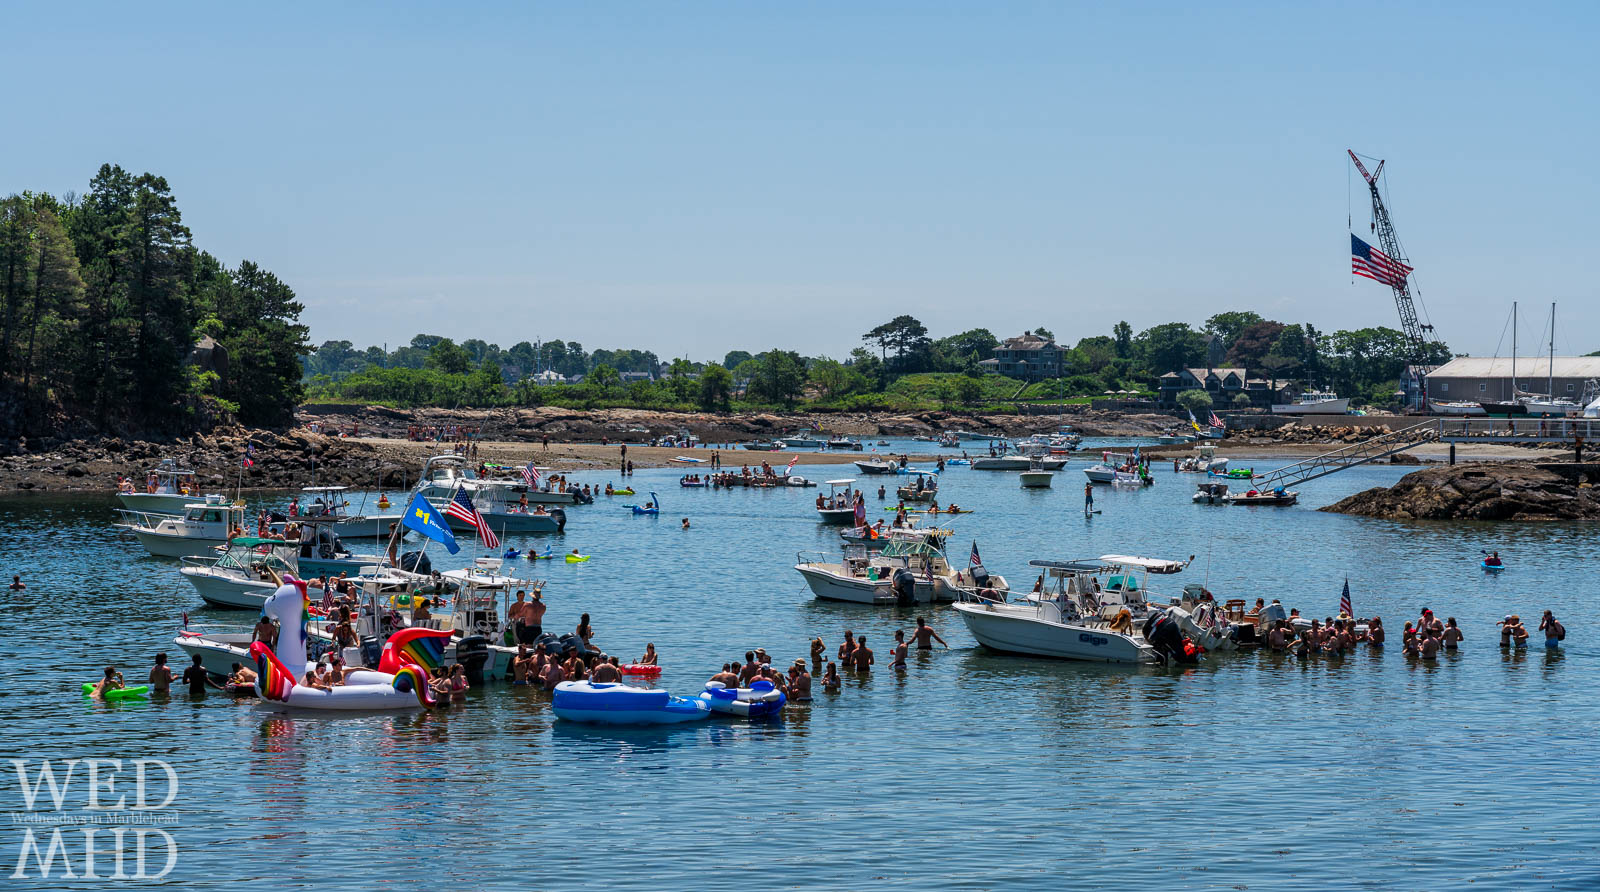 Boats are tied up in Little Harbor as people celebrate the Fourth of July